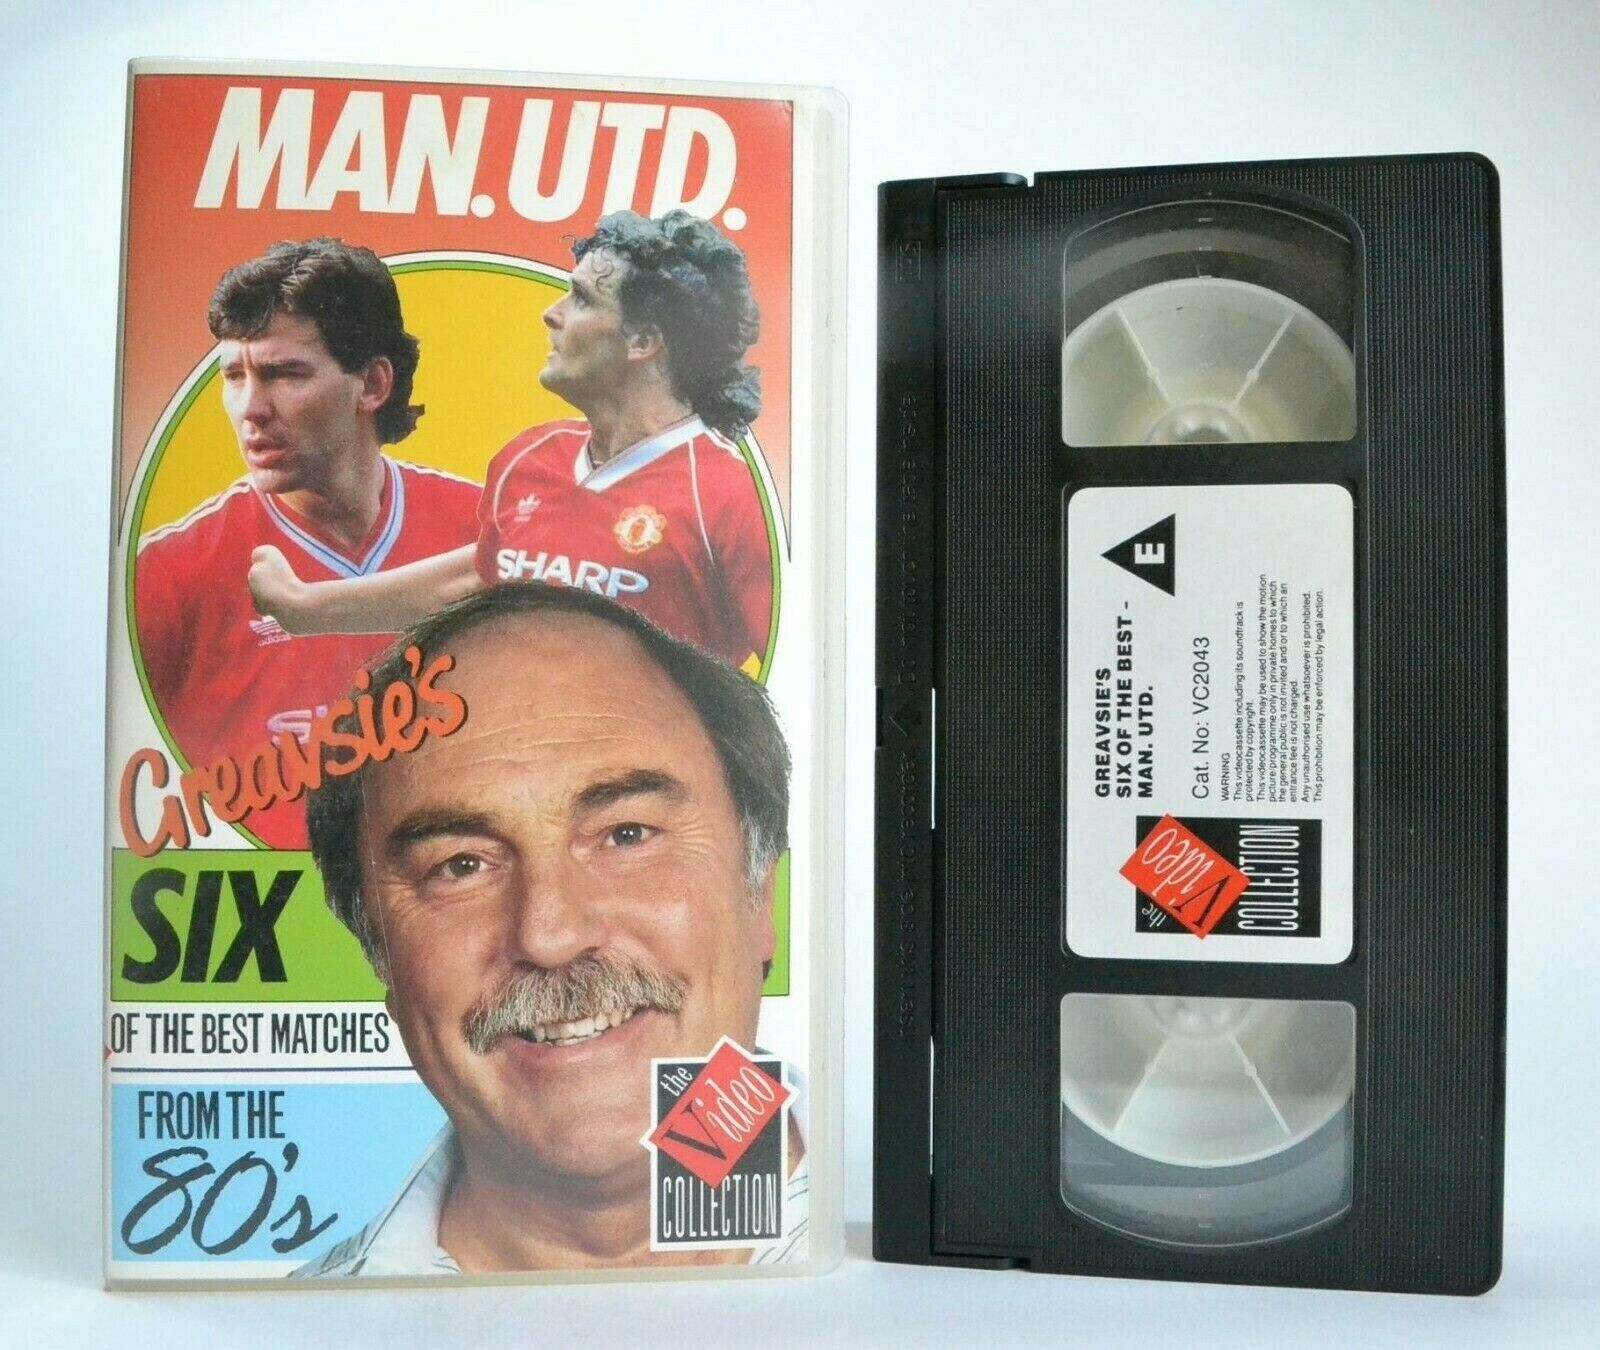 Manchester United: 6 Of The Best Matches From The 80's - Football - Sports - VHS